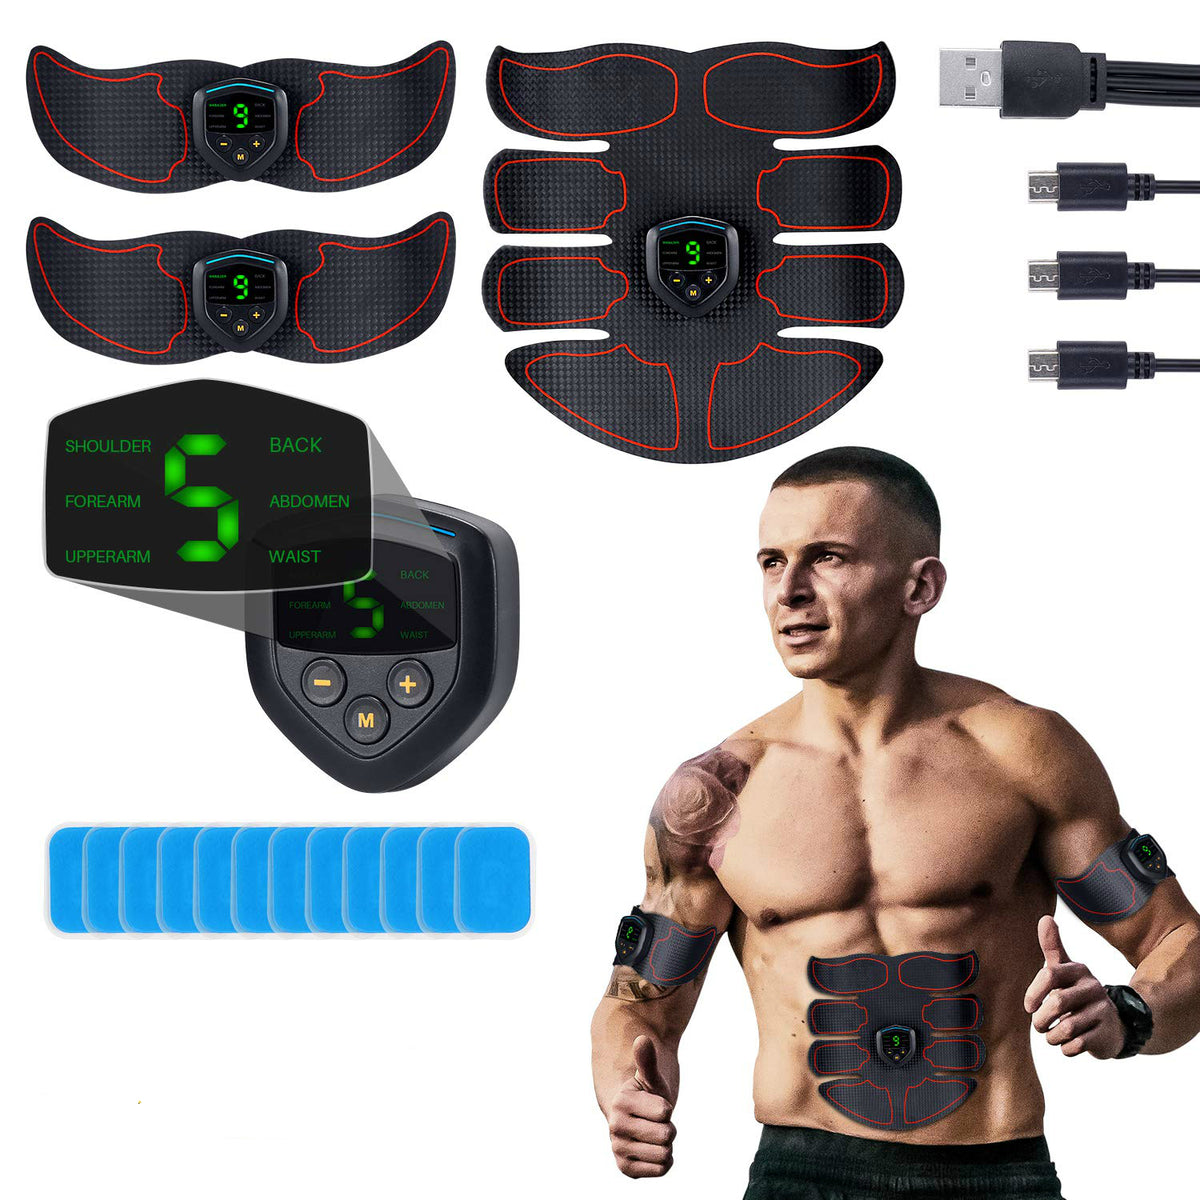 Ab Stimulator Muscle Toner Rechargeable Muscle Trainer Ultimate Abs Stimulator for Men Women Abdominal Work Out Ads Power Fitness Abs Muscle Training Gear ABS Workout Equipment Portable